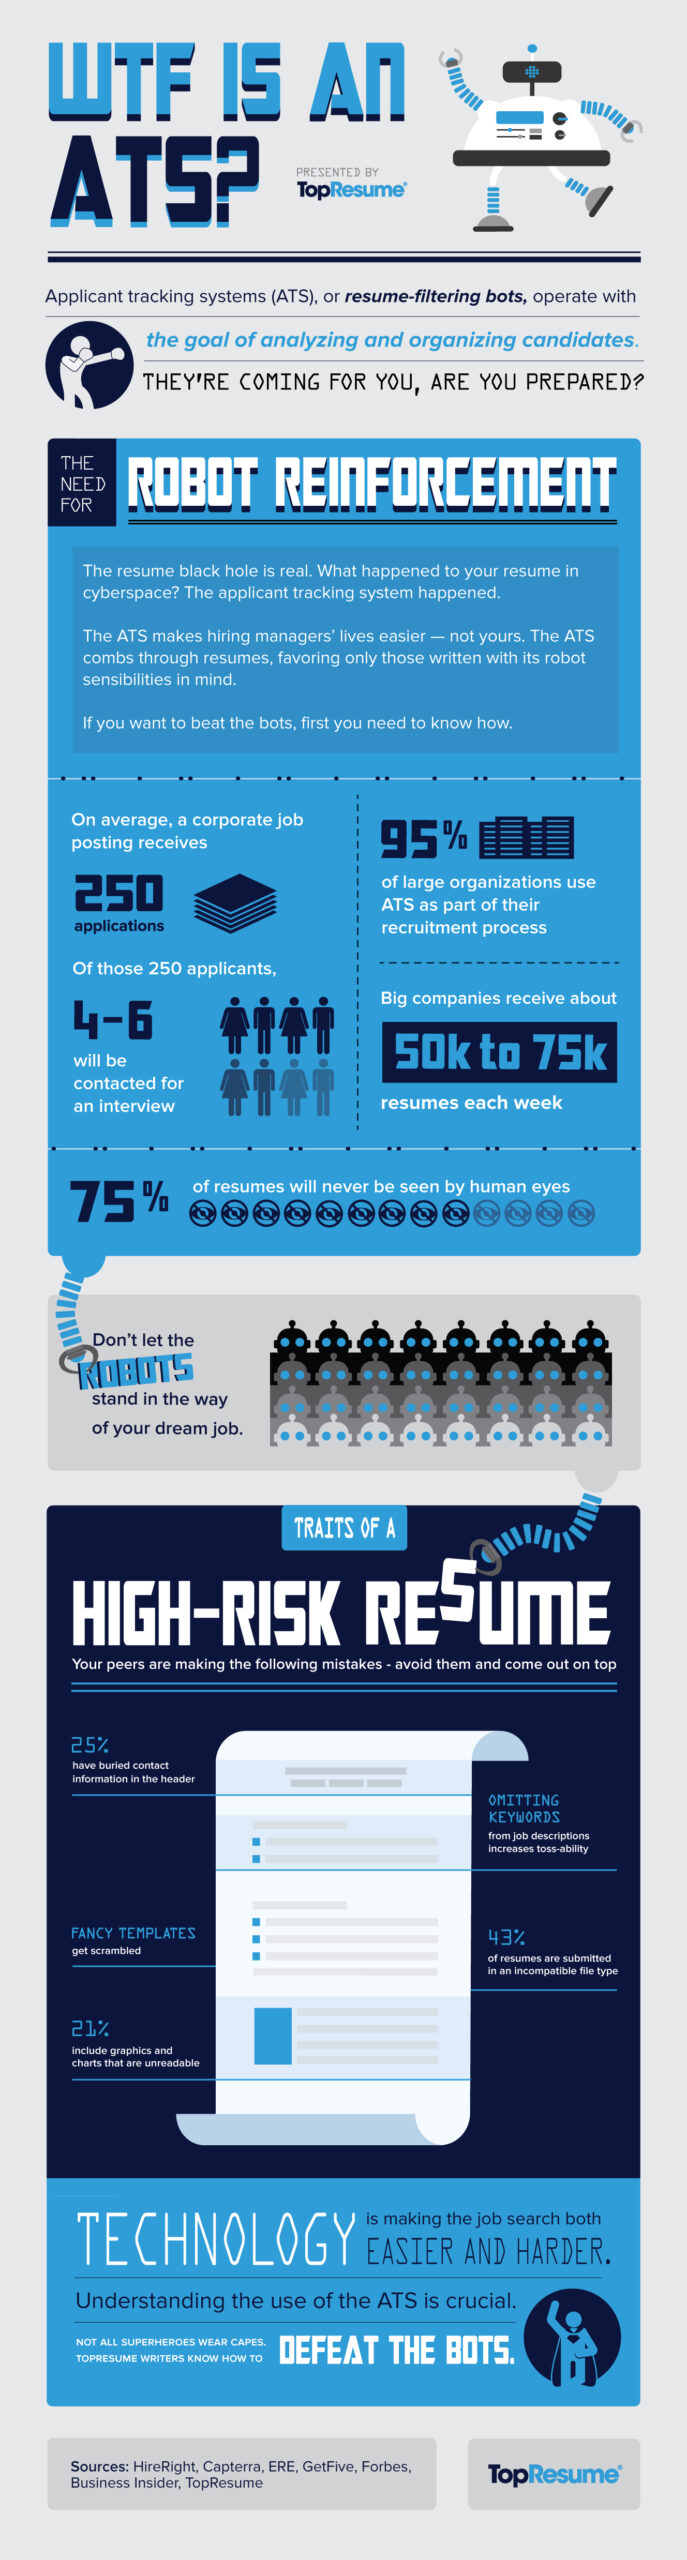 an ats to write resume beat the applicant tracking system topresume test free infographic Resume Ats Resume Test Free